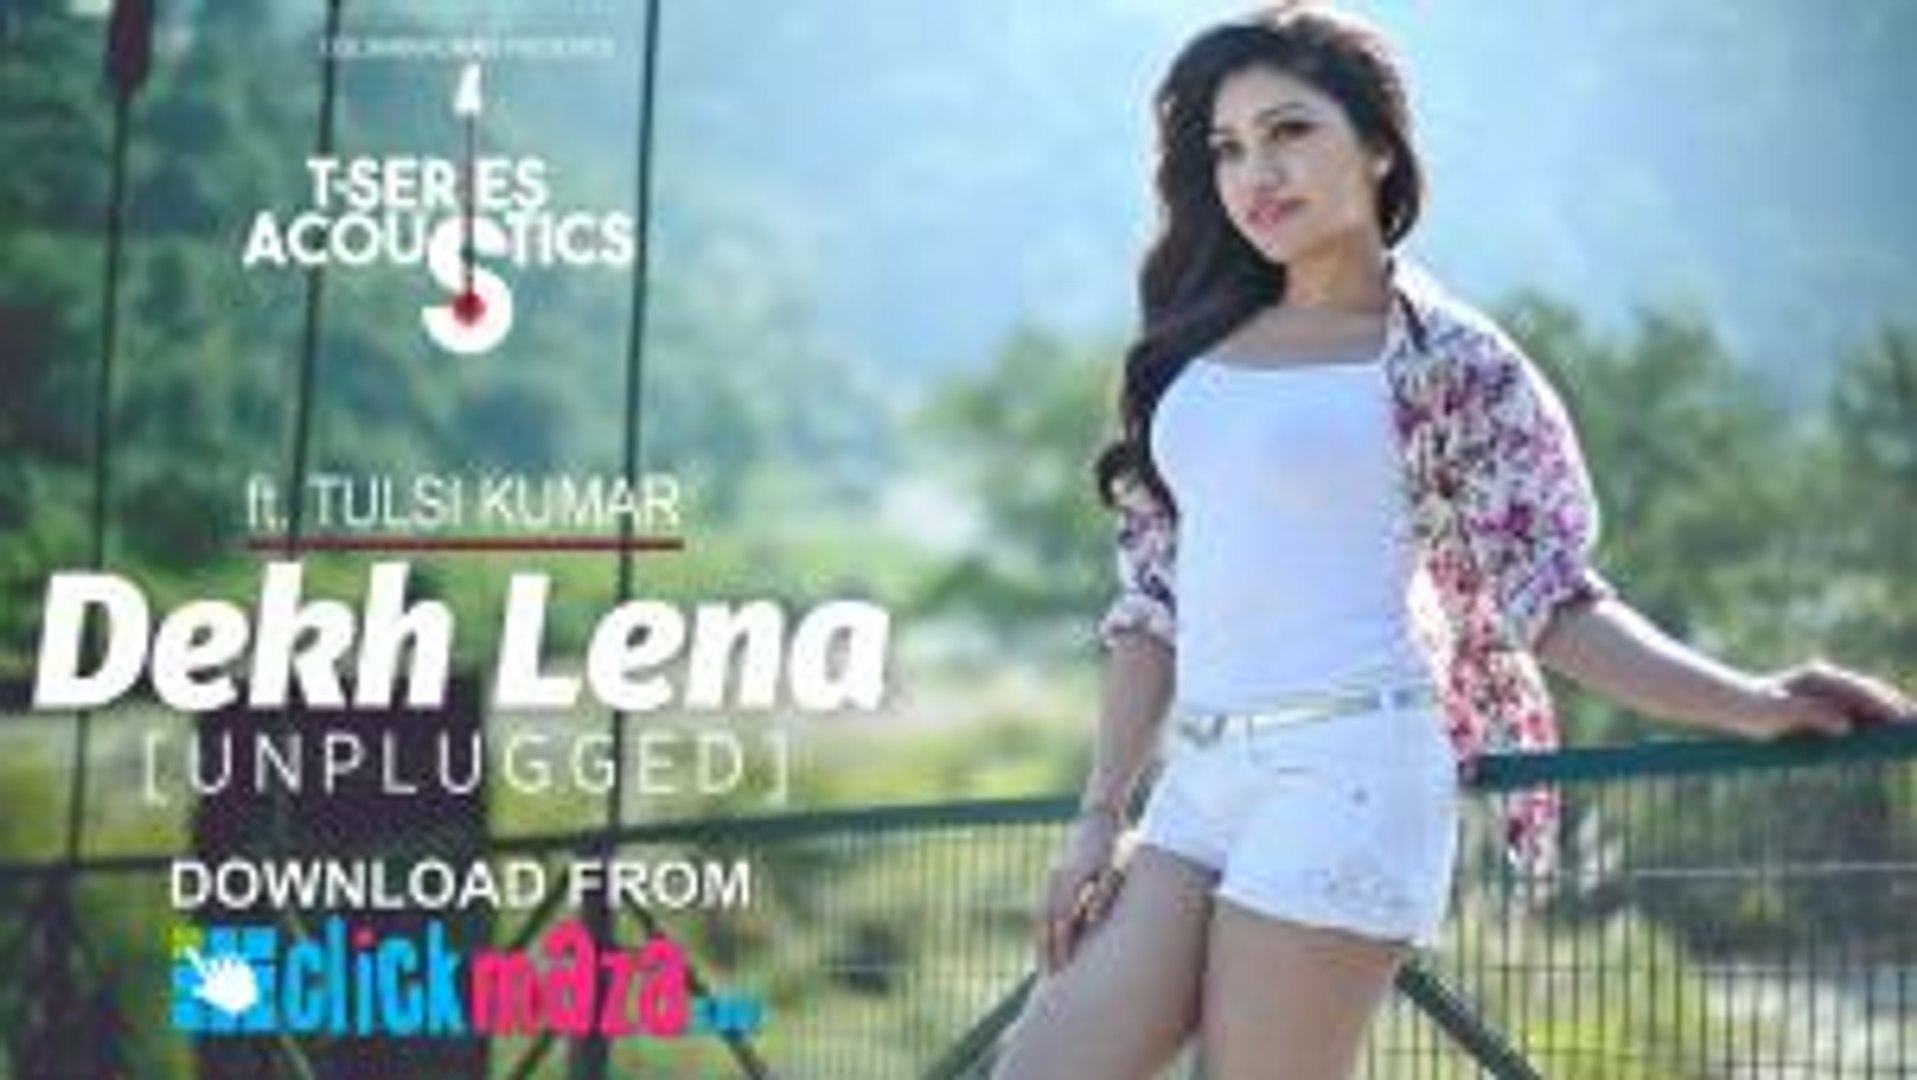 Dekh Lena | Tulsi Kumar | (Unplugged) Video Song | T-Series Acoustics | Tulsi Kumar | T-Series